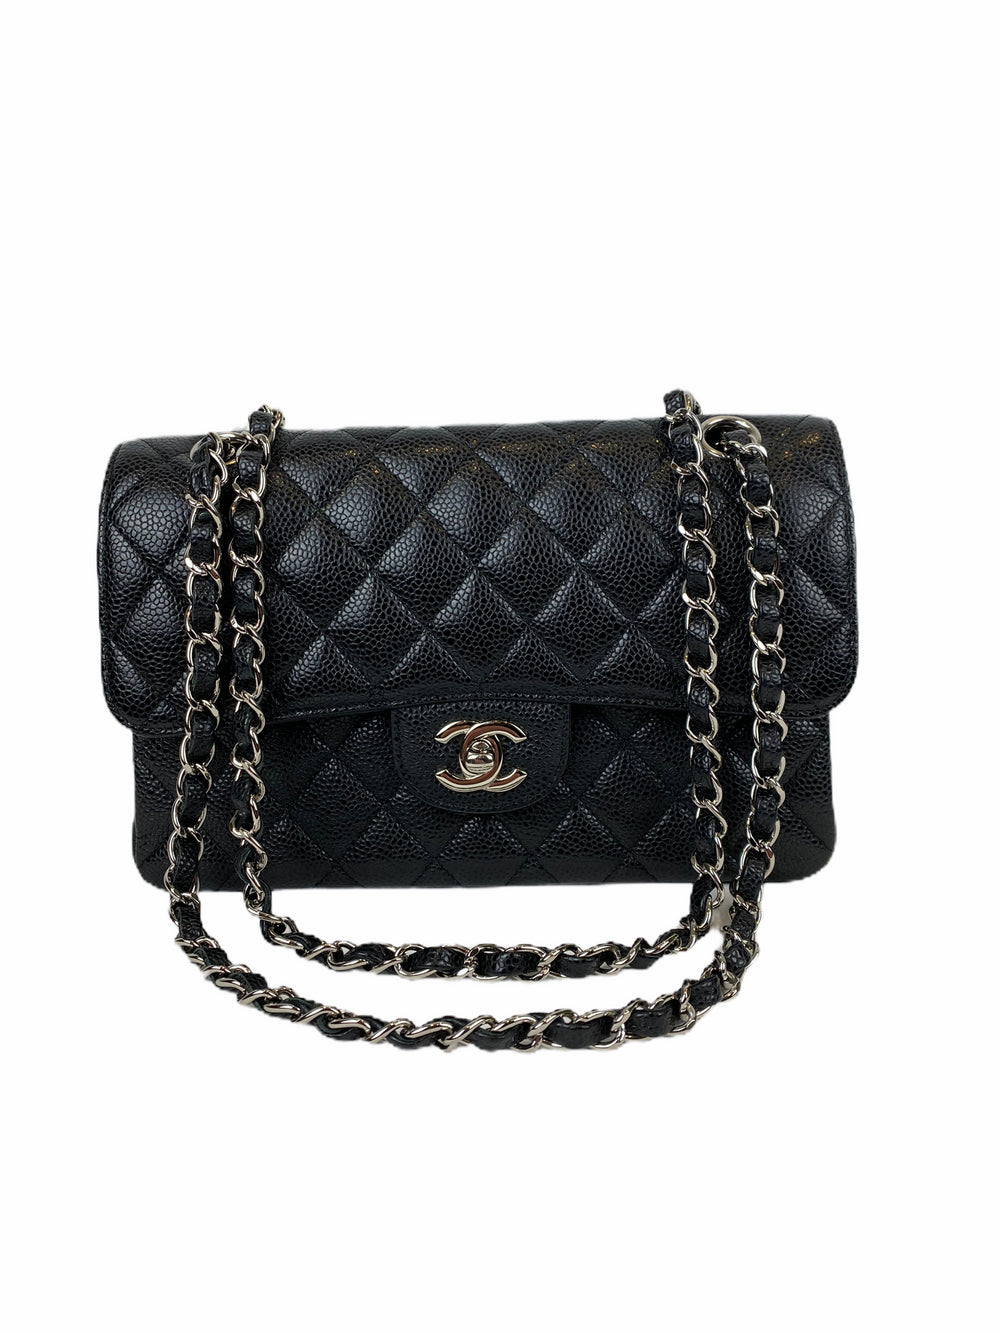 Chanel Small Black Caviar Leather Double Flap